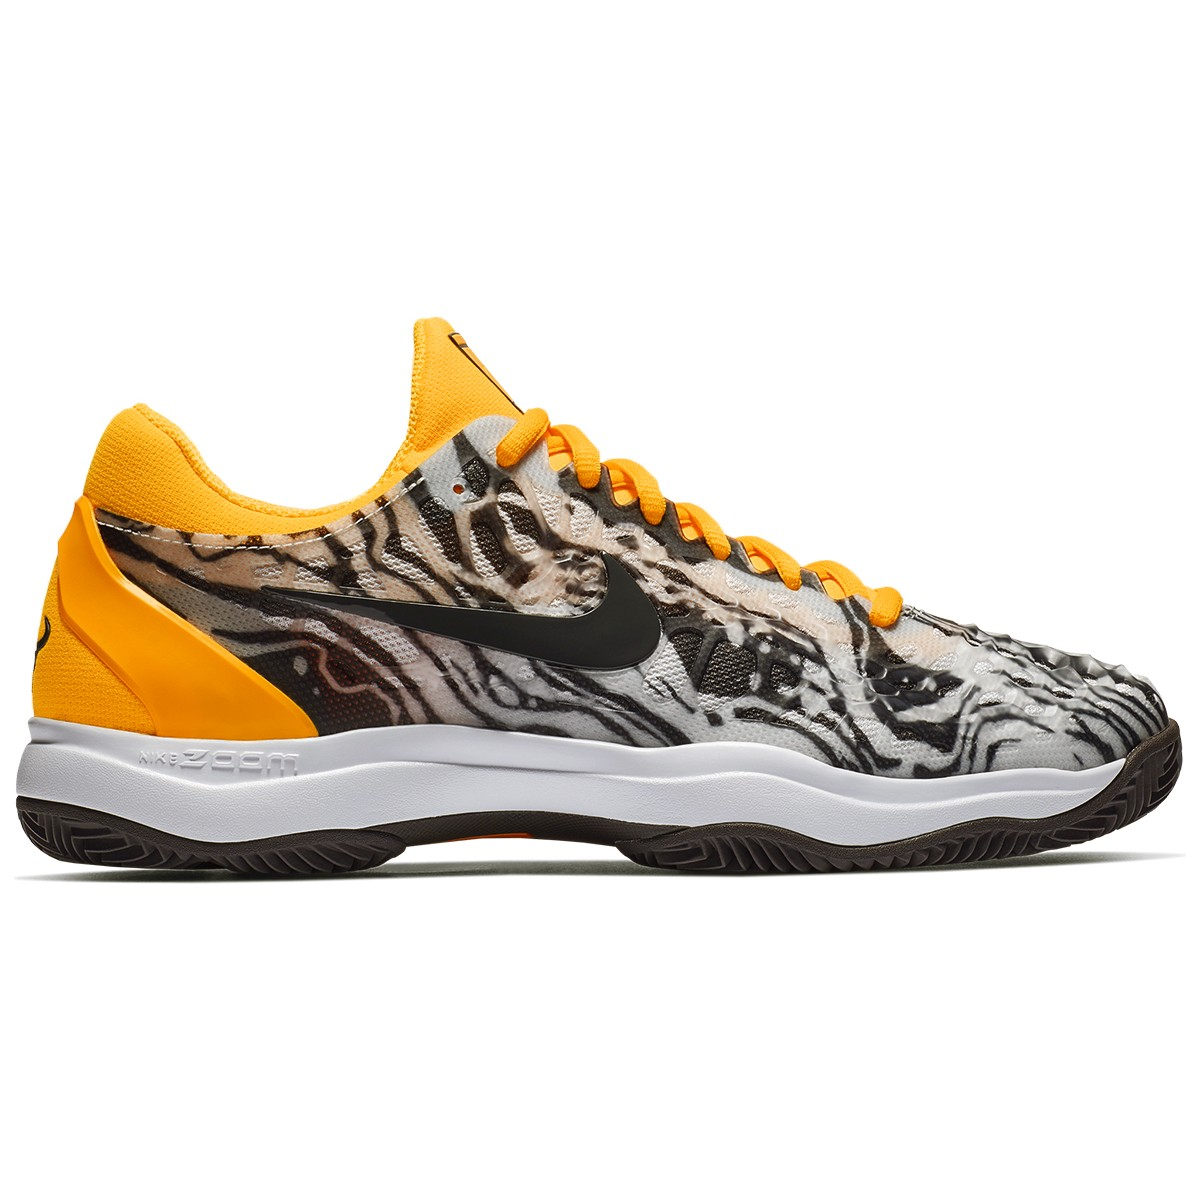 newest 905a7 0e2ff CHAUSSURES NIKE AIR ZOOM CAGE 3 NADAL TERRE BATTUE +